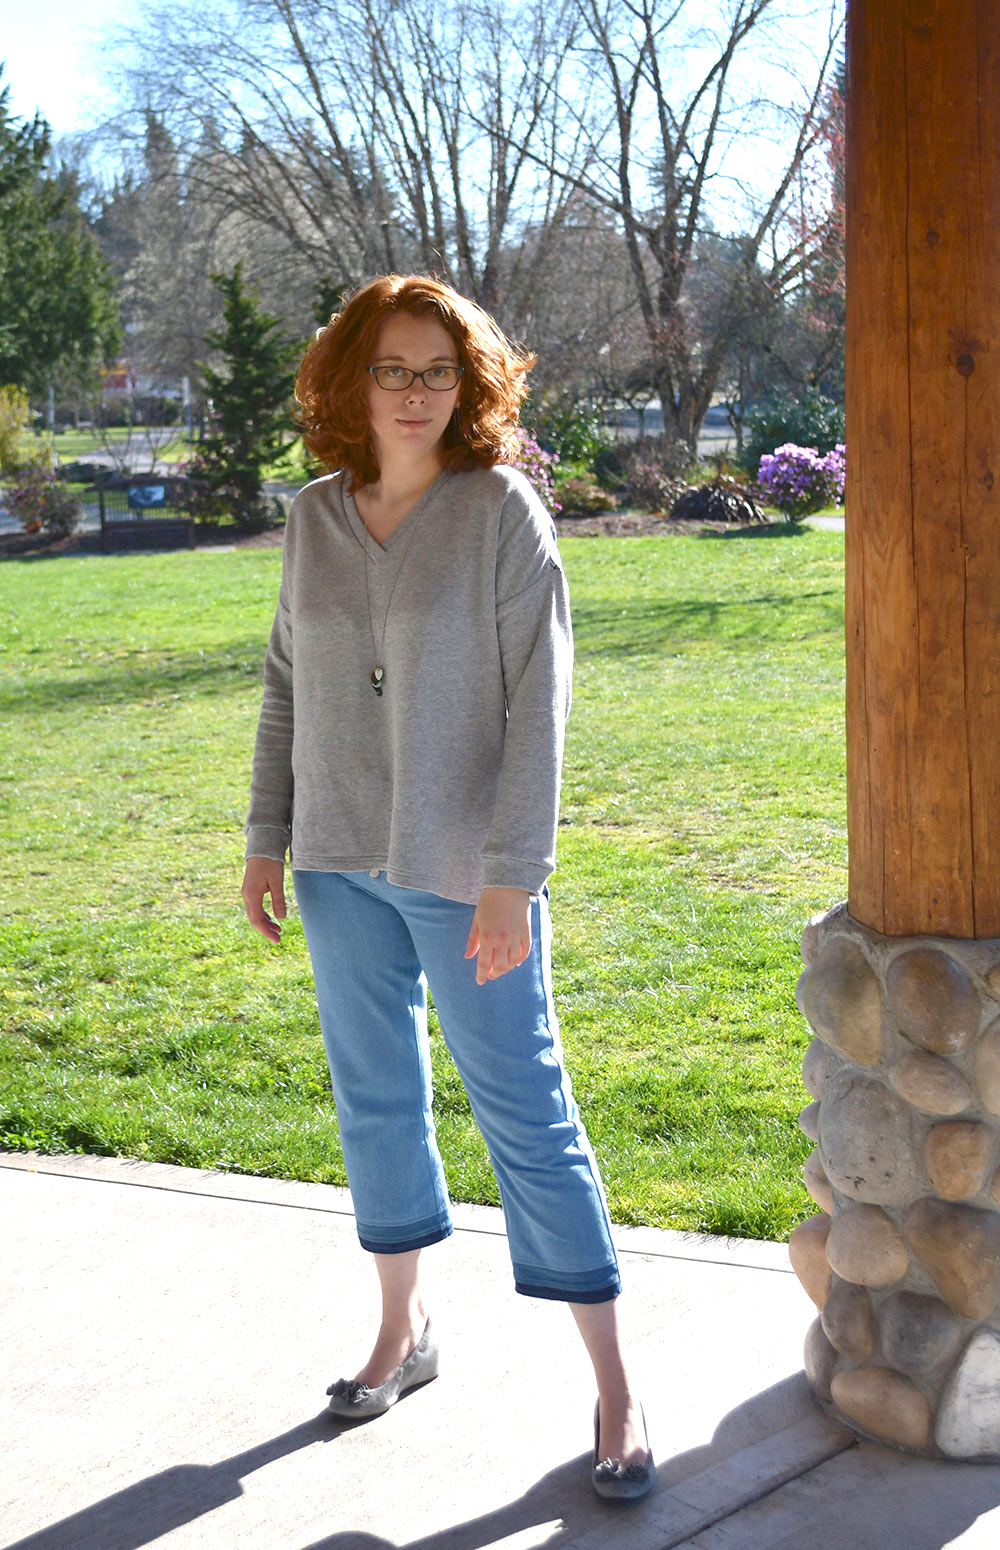 Tabor V-Neck and Dawn Jeans Outfit | Style Maker Fabrics